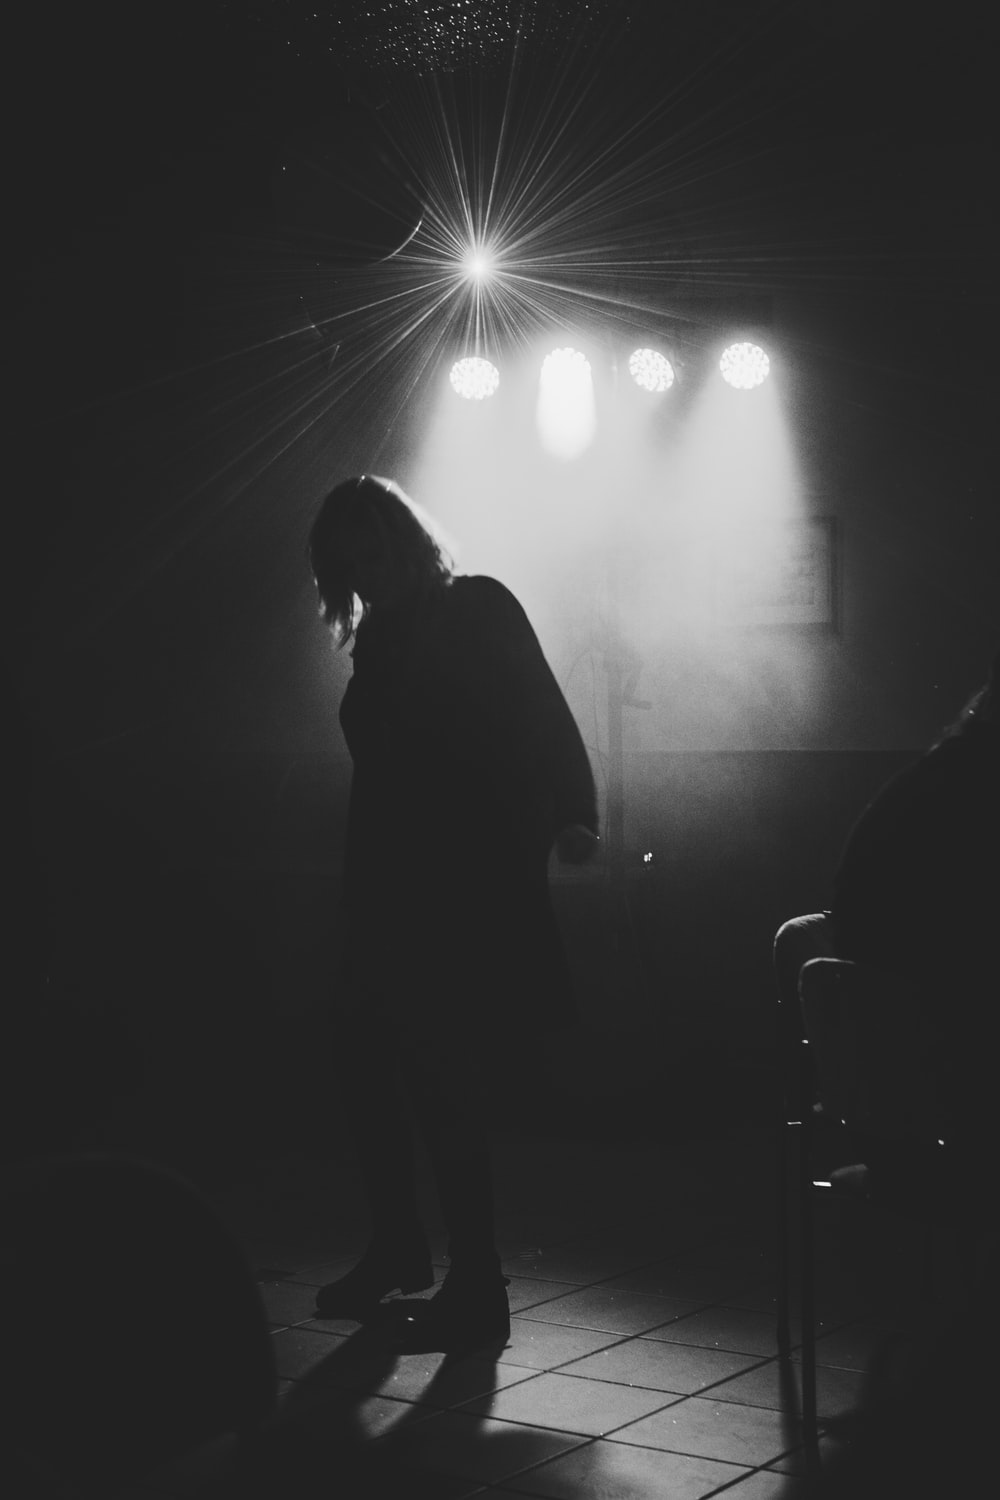 grey-scale photo of a person in a stage close-up photography